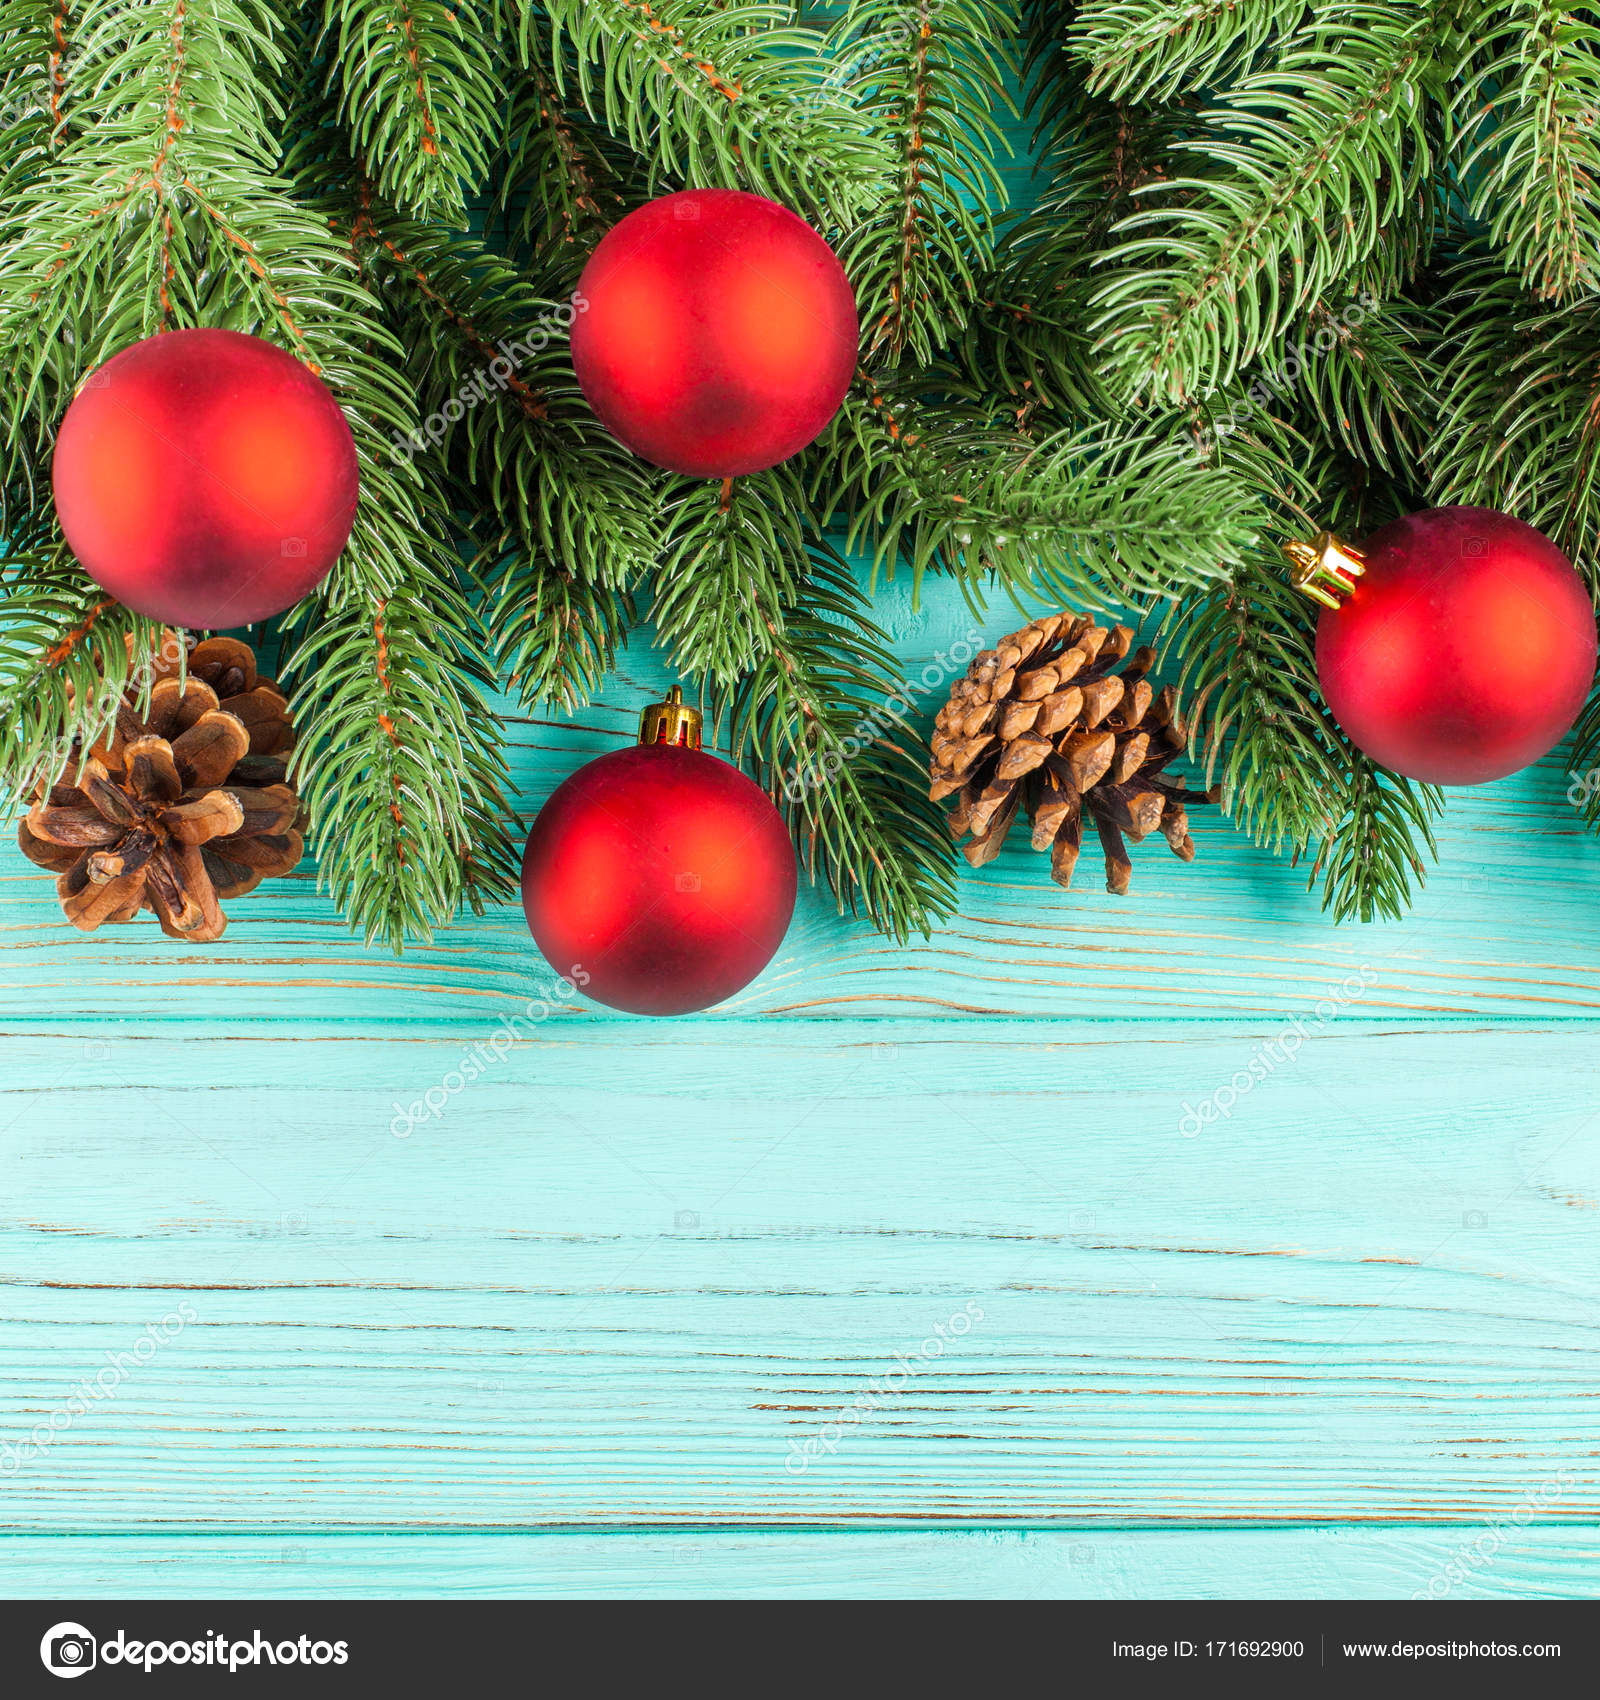 Christmas Banner With Green Tree Red And White Handmade Felt Decorations On White Wooden Textured Background Stock Photo Image By C Rojdesign 171692900